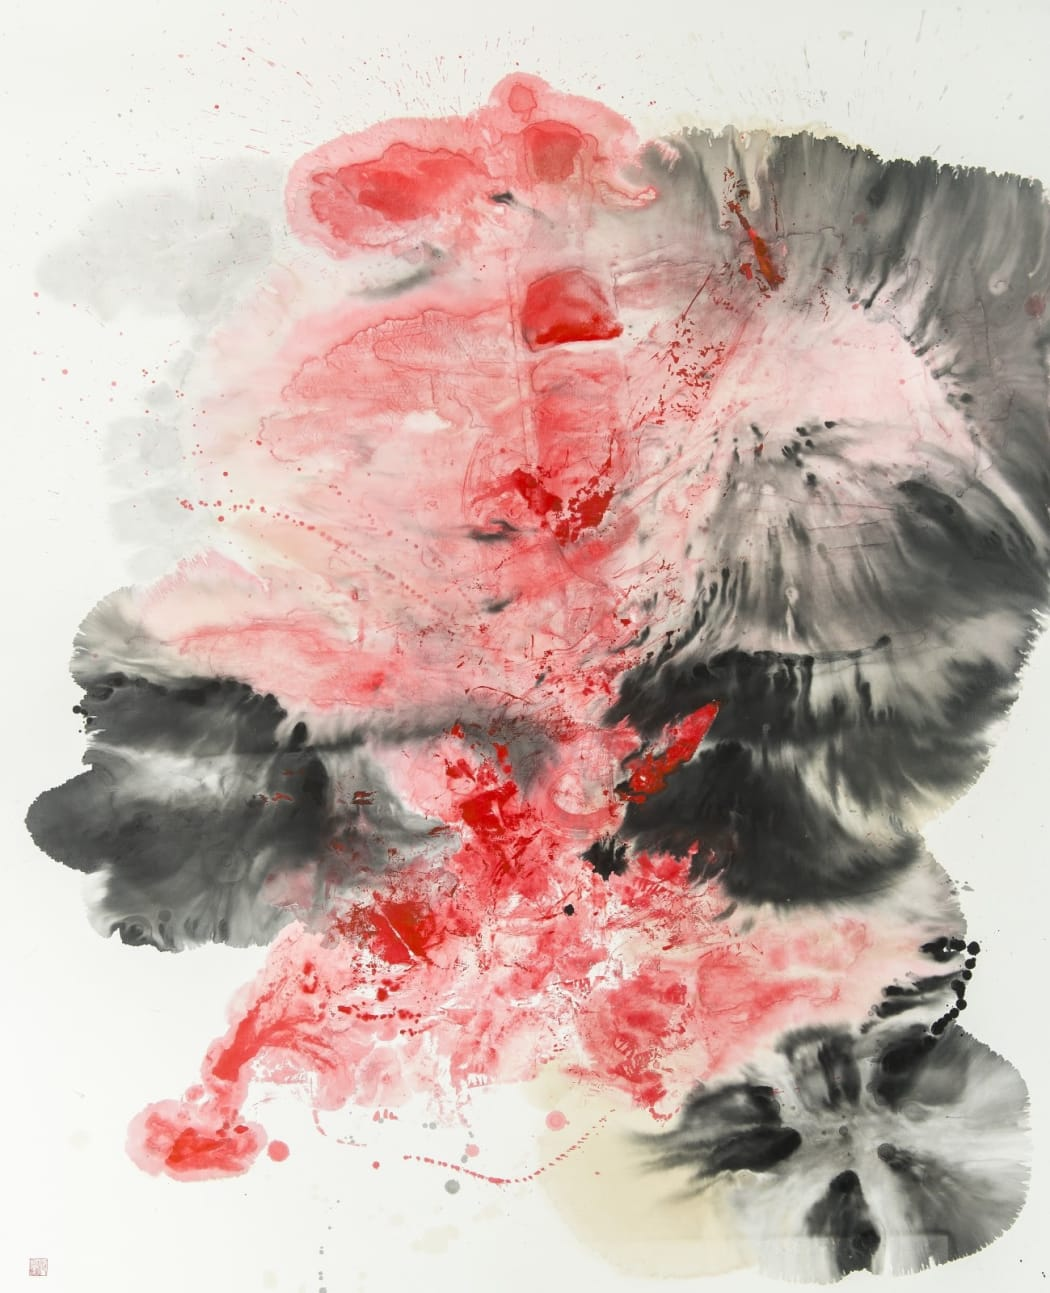 Chloe Ho, Ink Eruption, 2017 Chinese ink, coffee and acrylic on rice paper, 159 x 131 cm